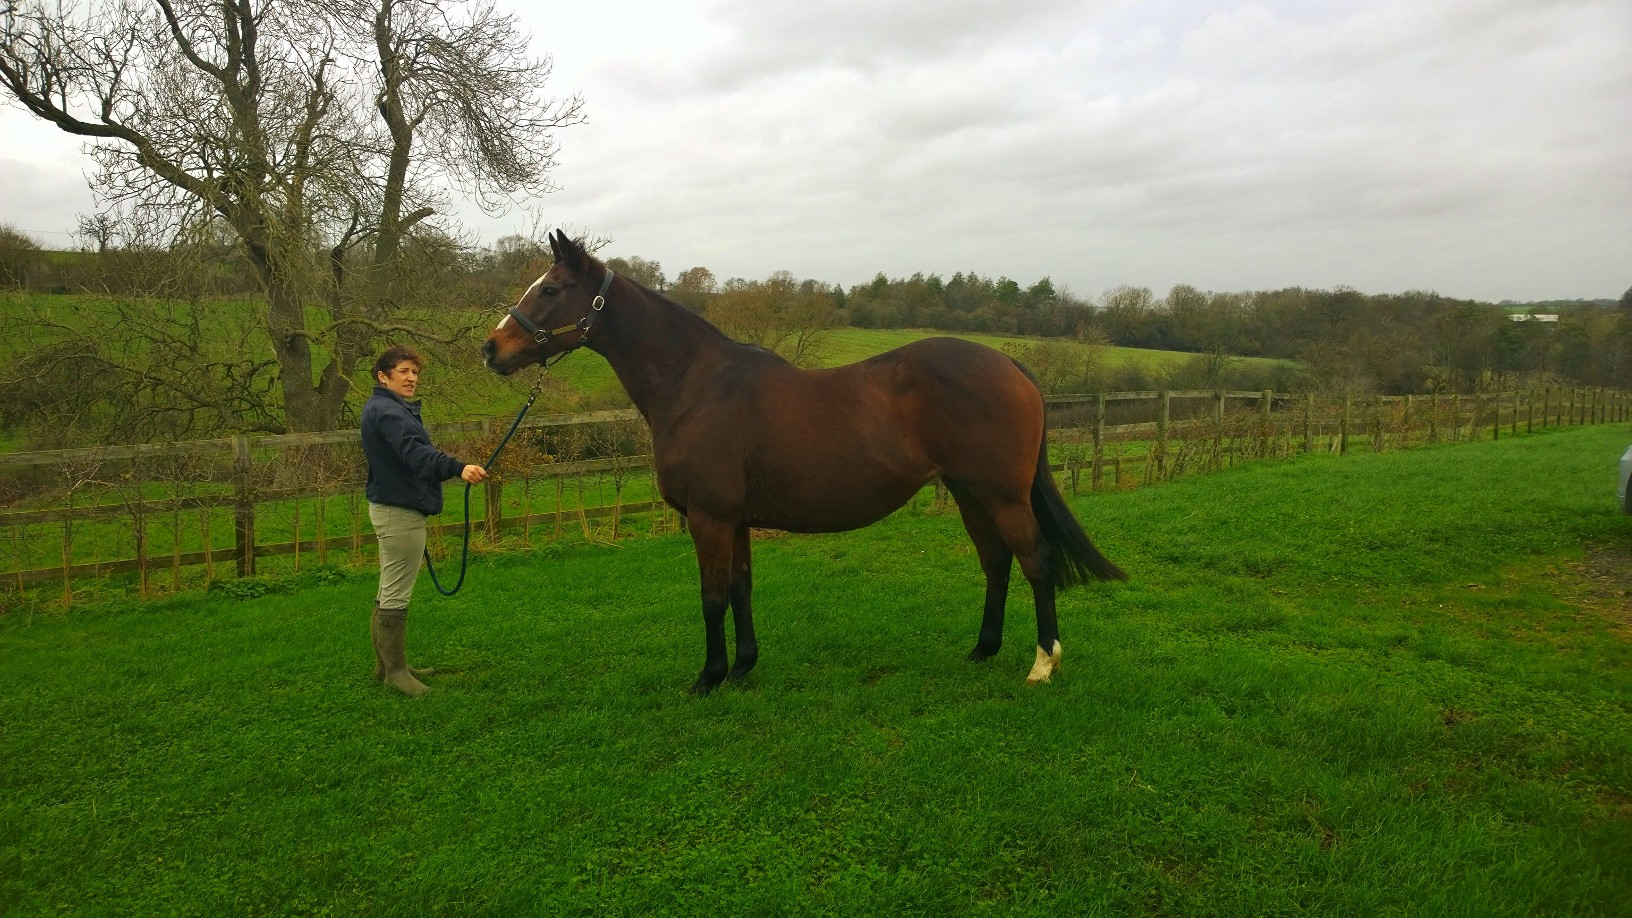 Hanella by Galileo out of Strutting having her first photo taken at Culworth Grounds